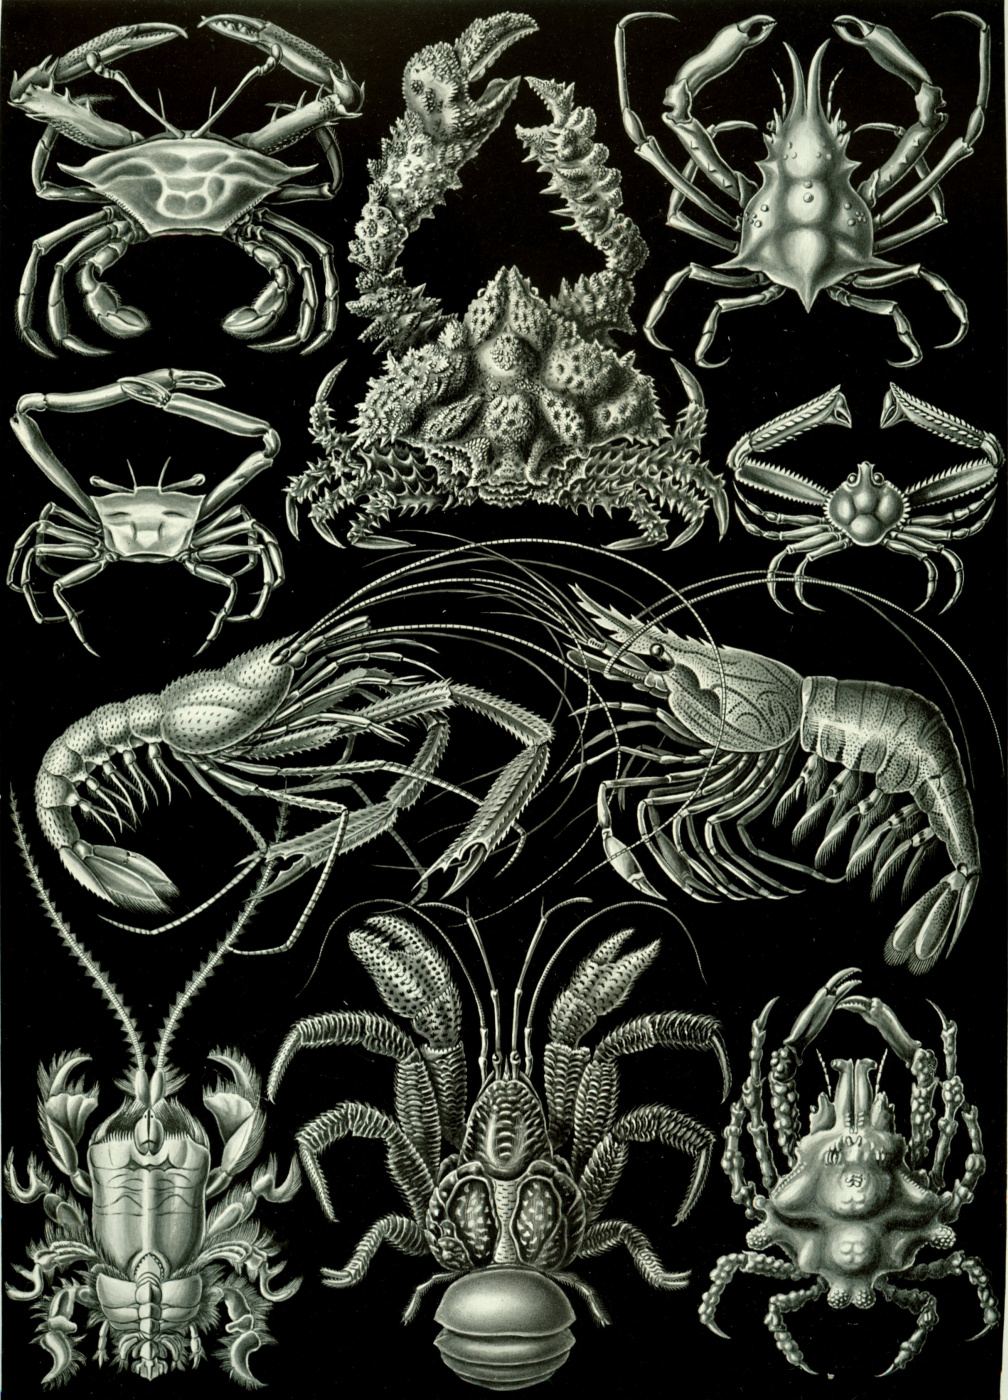 """Ernst Heinrich Haeckel. Decapod crustaceans (Decapods). """"The beauty of form in nature"""""""